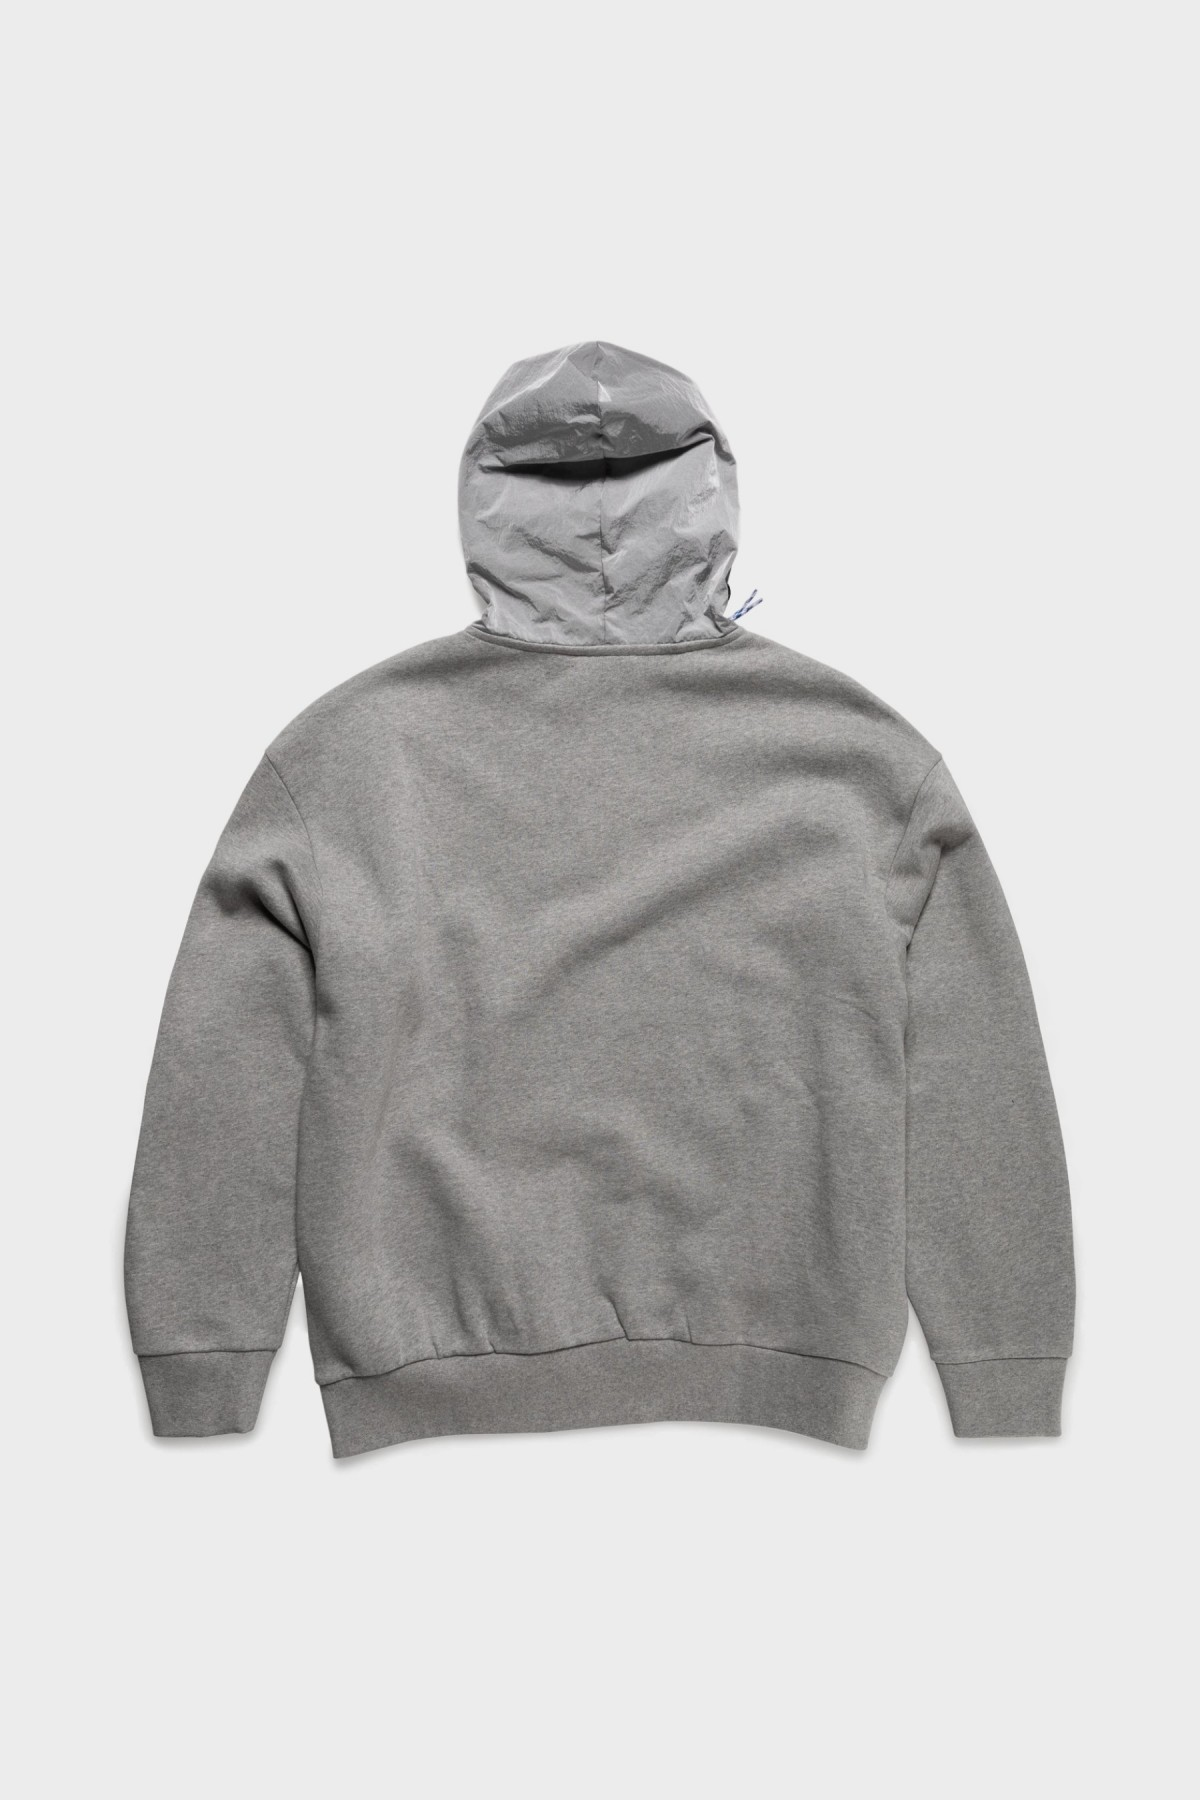 Aries Arise Hybrid Half Zip Hoodie in Grey Melange